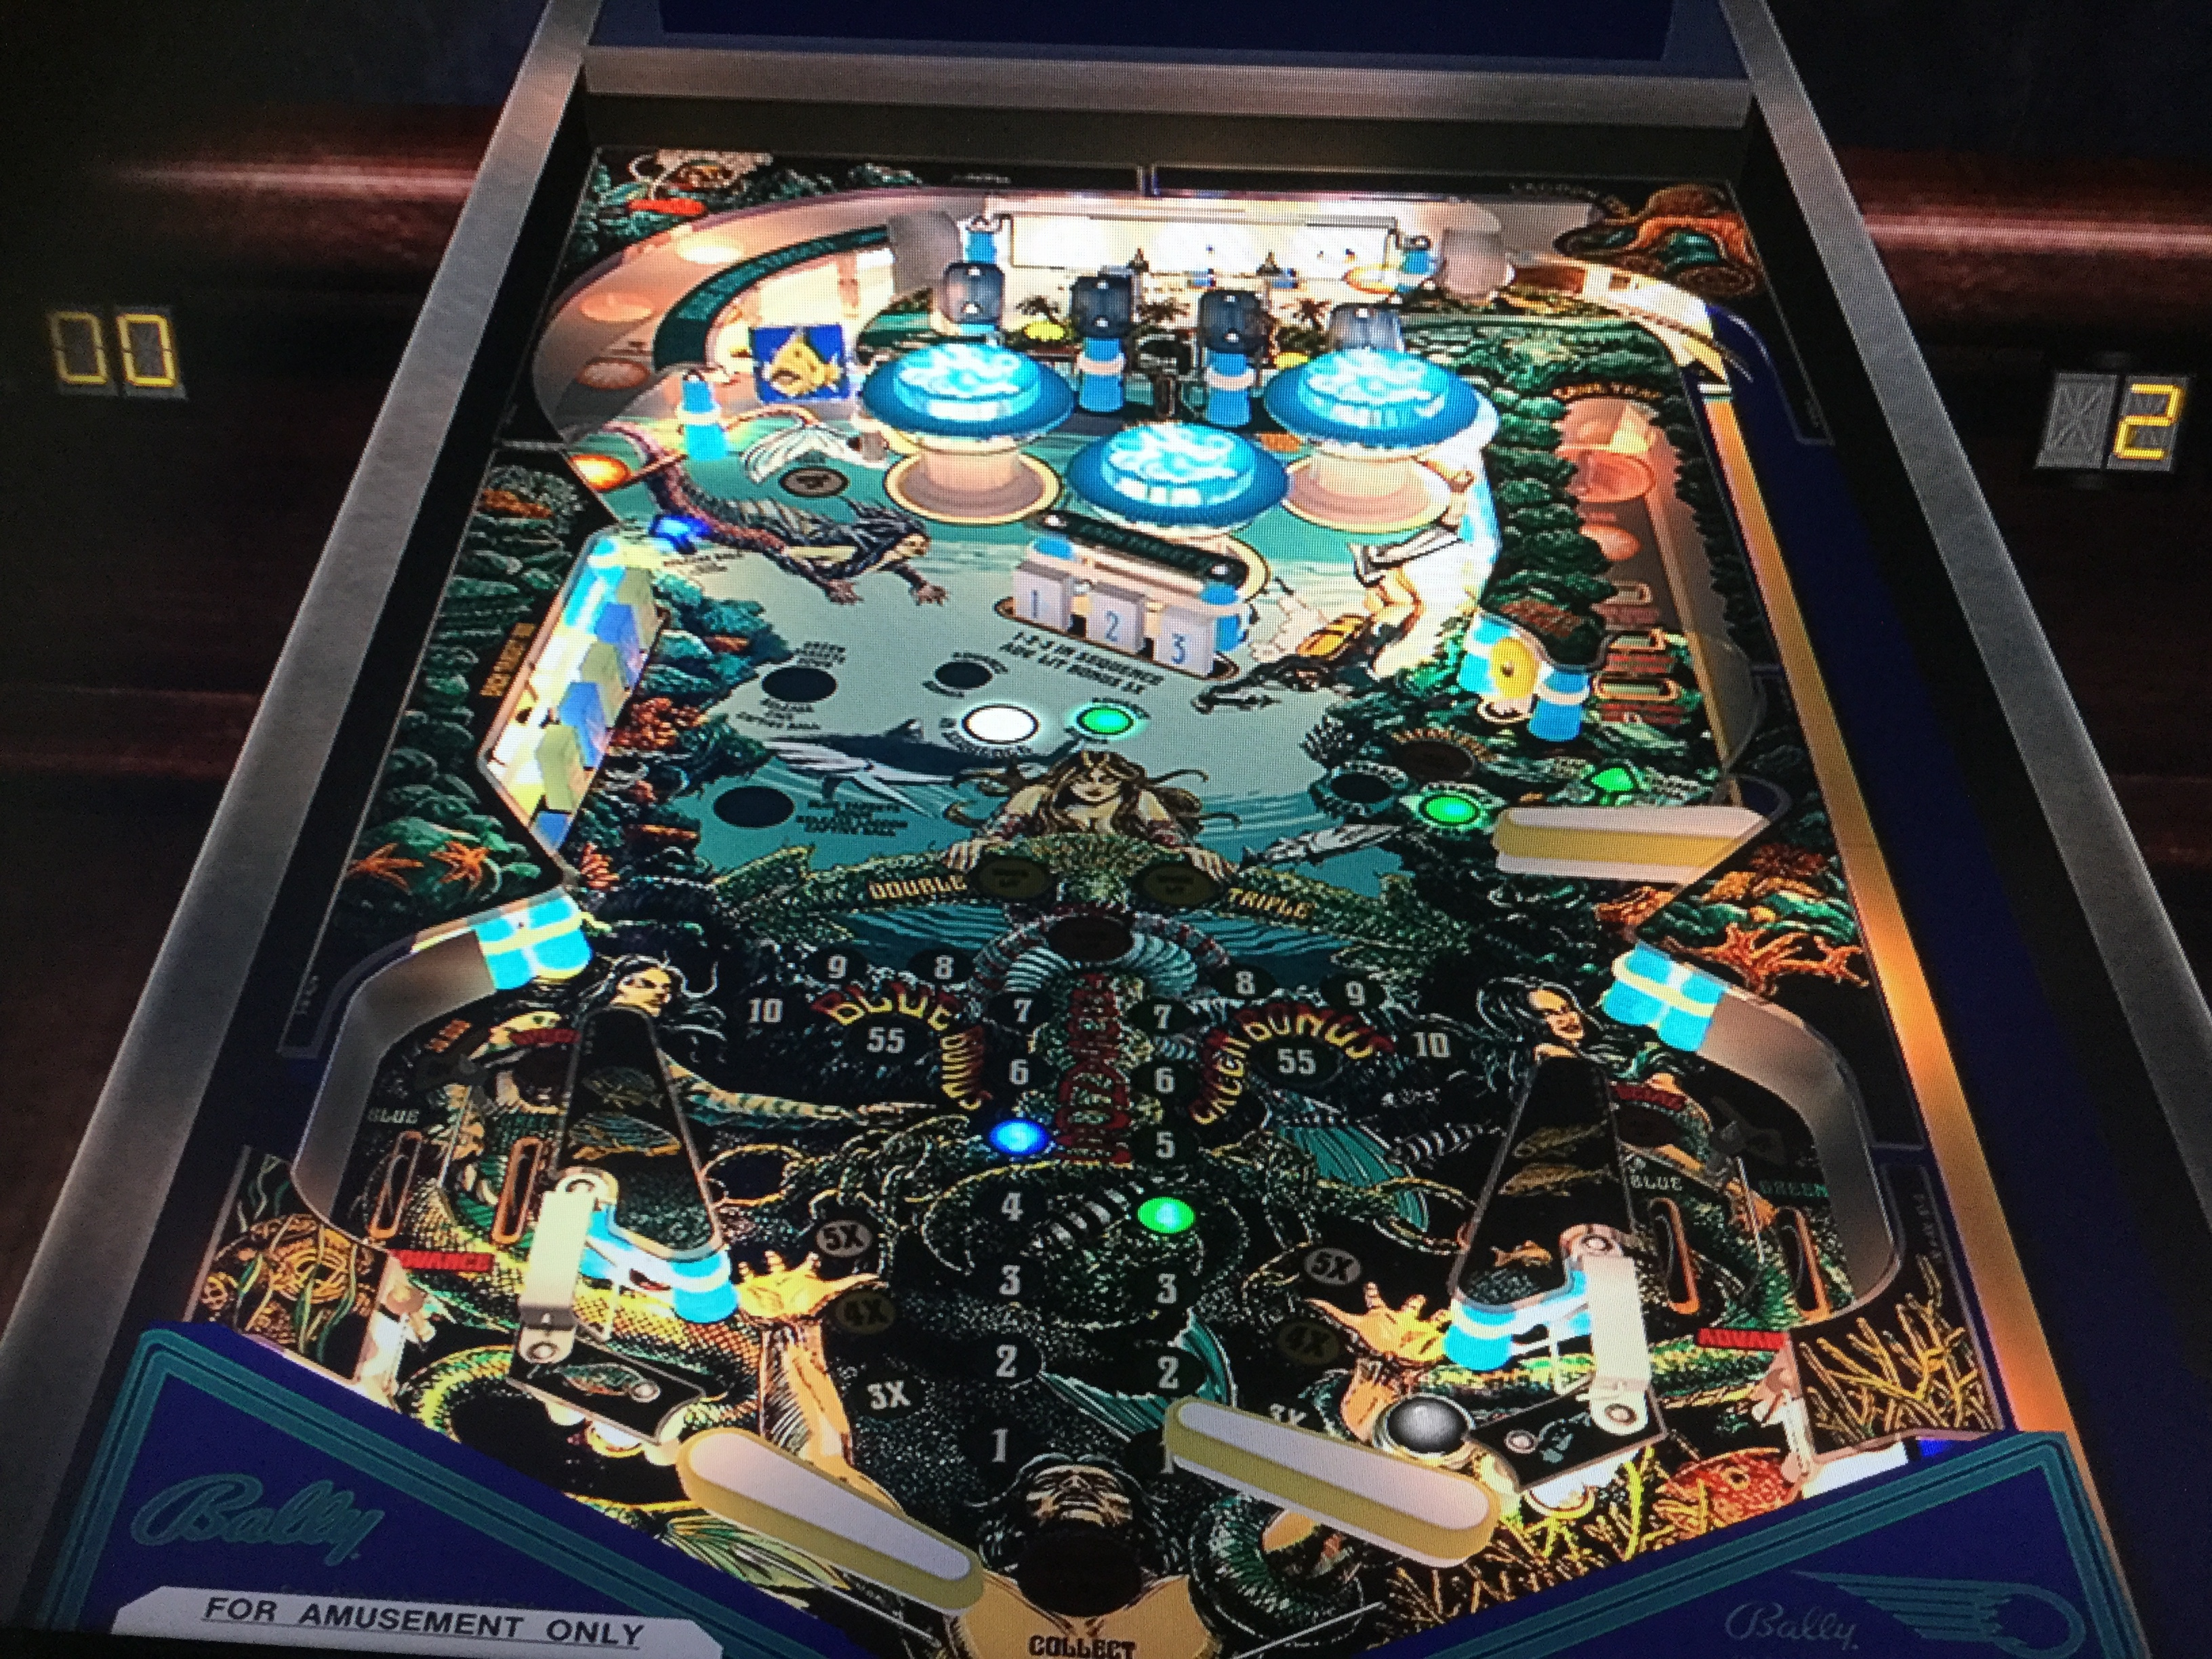 All Williams/Bally pinball machines unavailable in Pinball Arcade